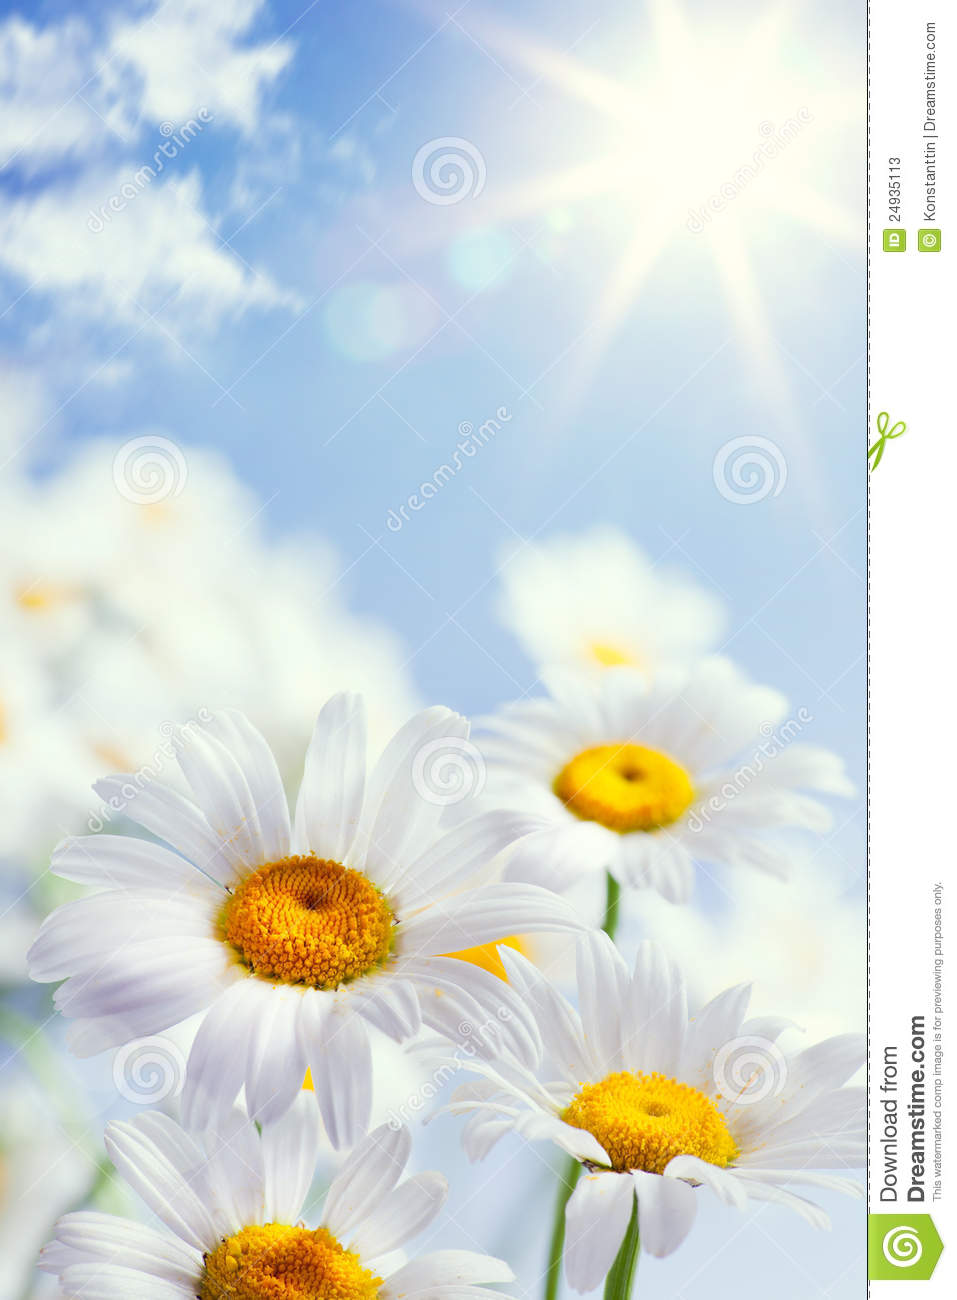 Abstract vintage floral summer background